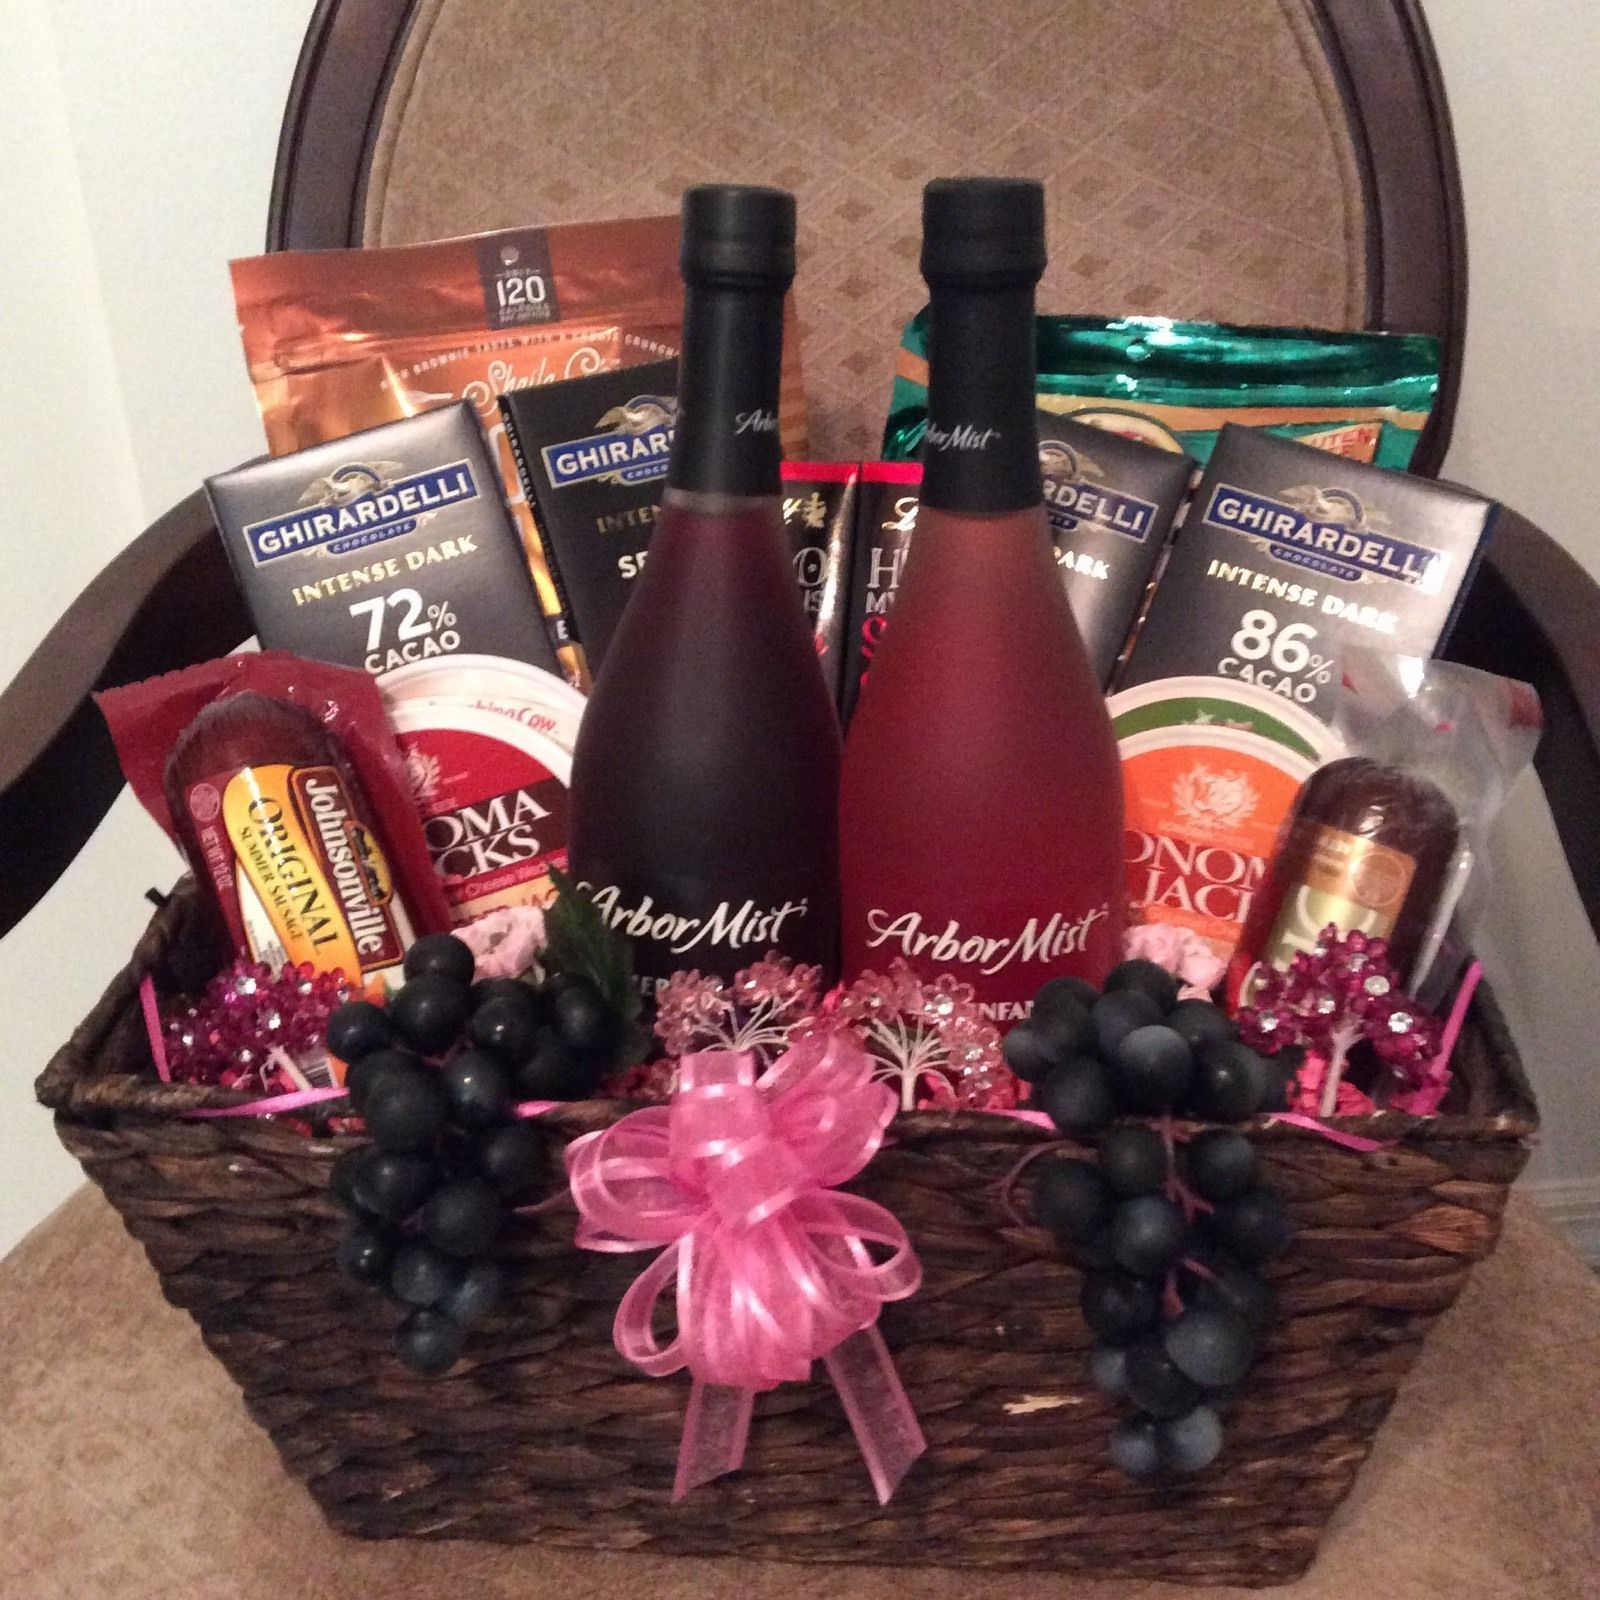 Wine Cheese And Chocolate Gift Basket Ebay Chocolate Gifts Basket Raffle Baskets Christmas Gift Baskets